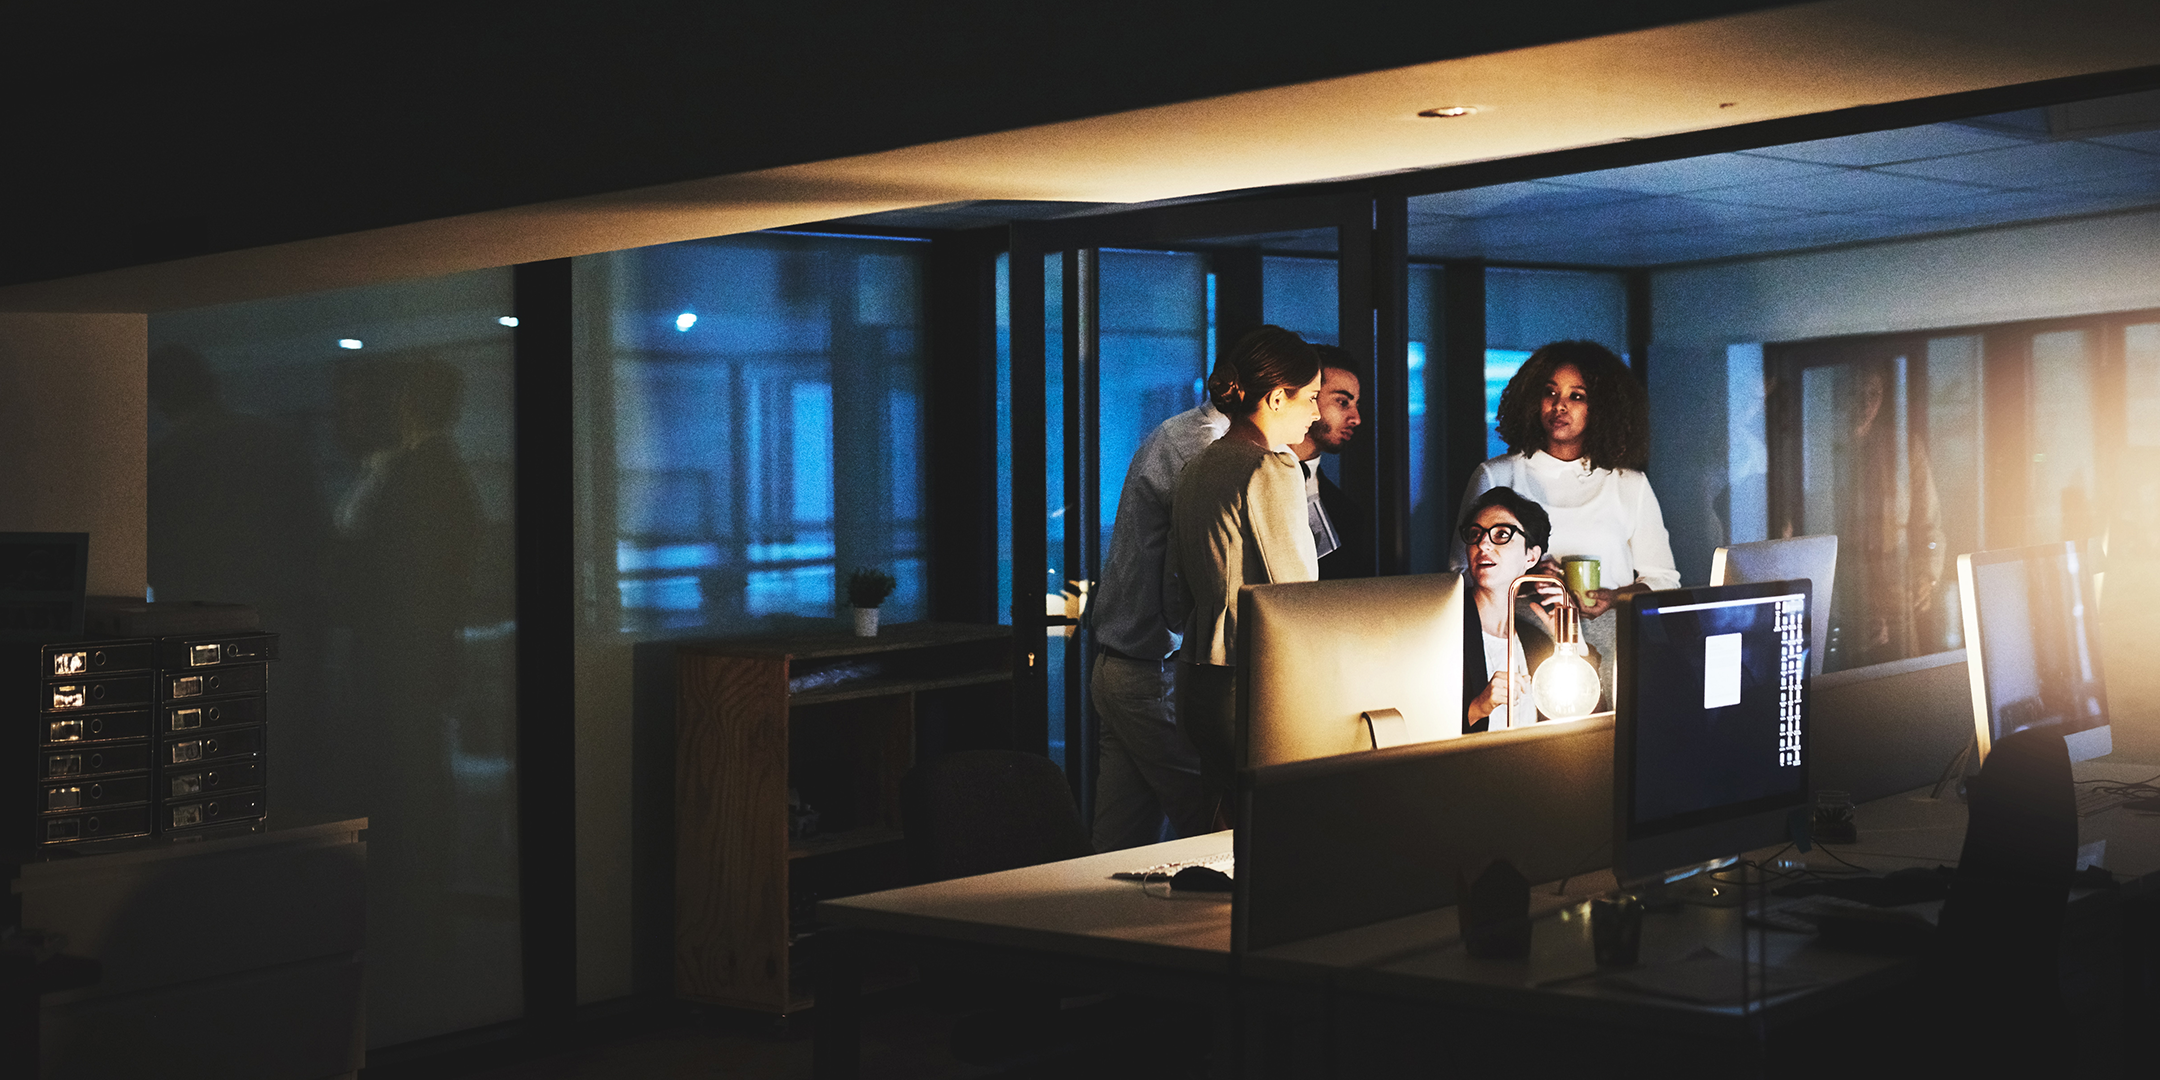 Security professionals gathered around a computer at night.